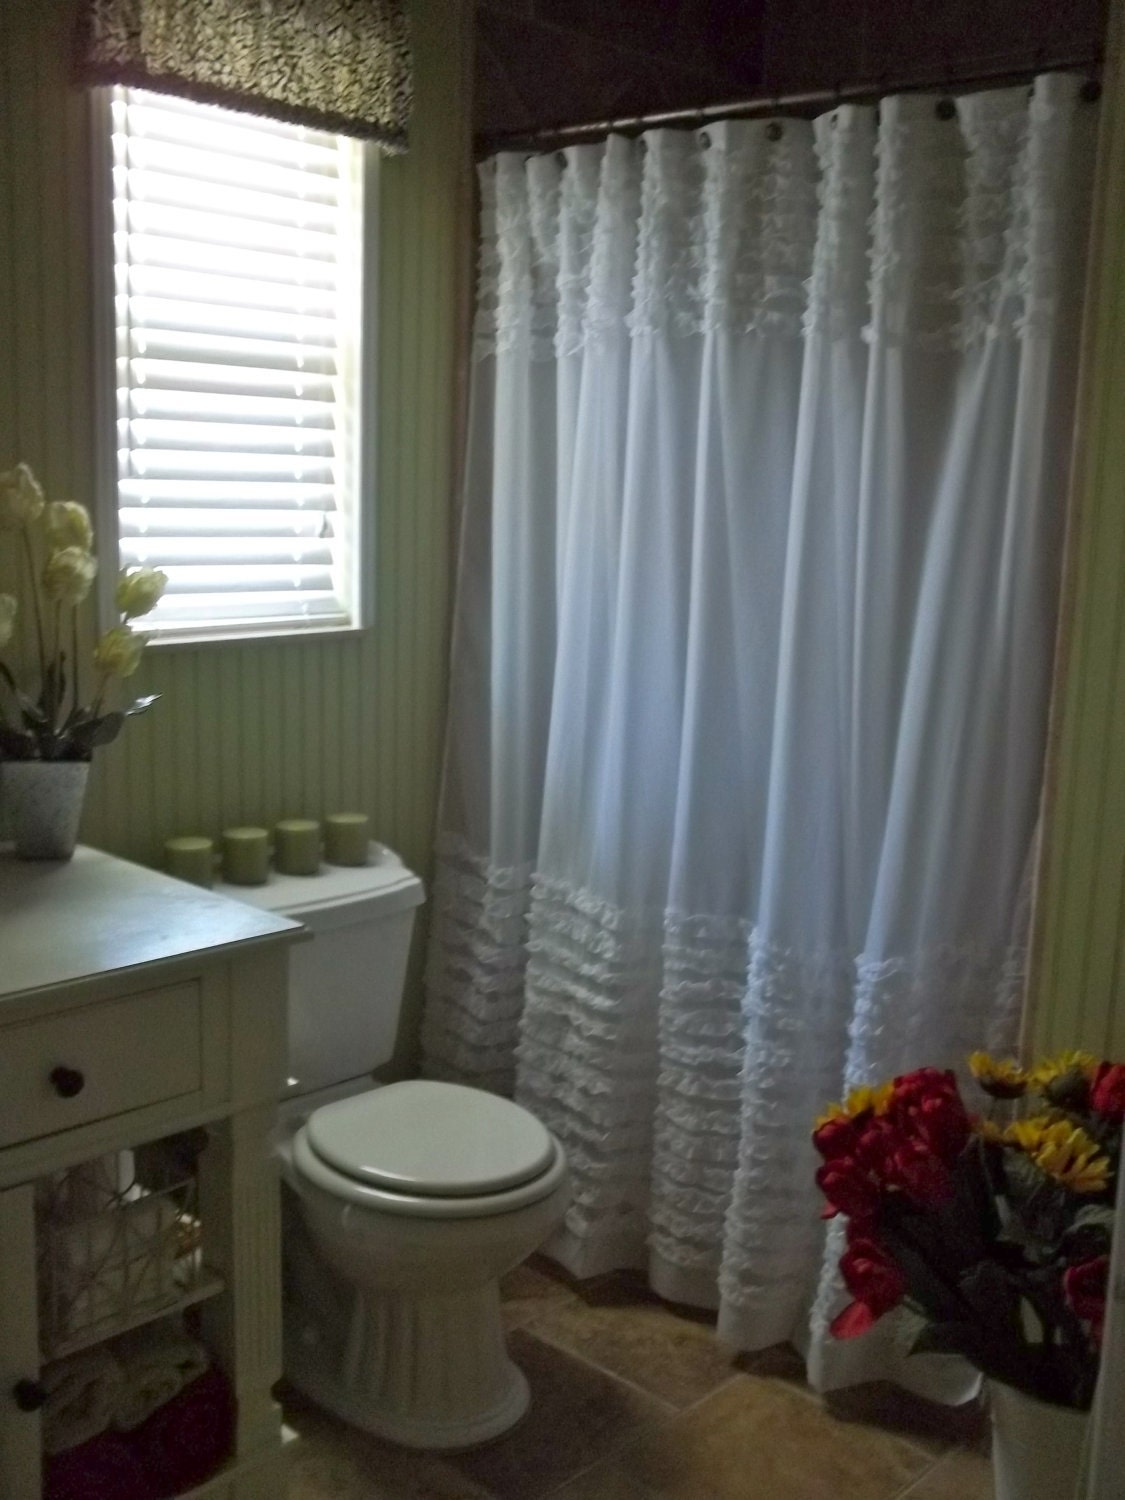 Shabby chic ruffles shower curtain for Shabby chic rhinestone shower hooks